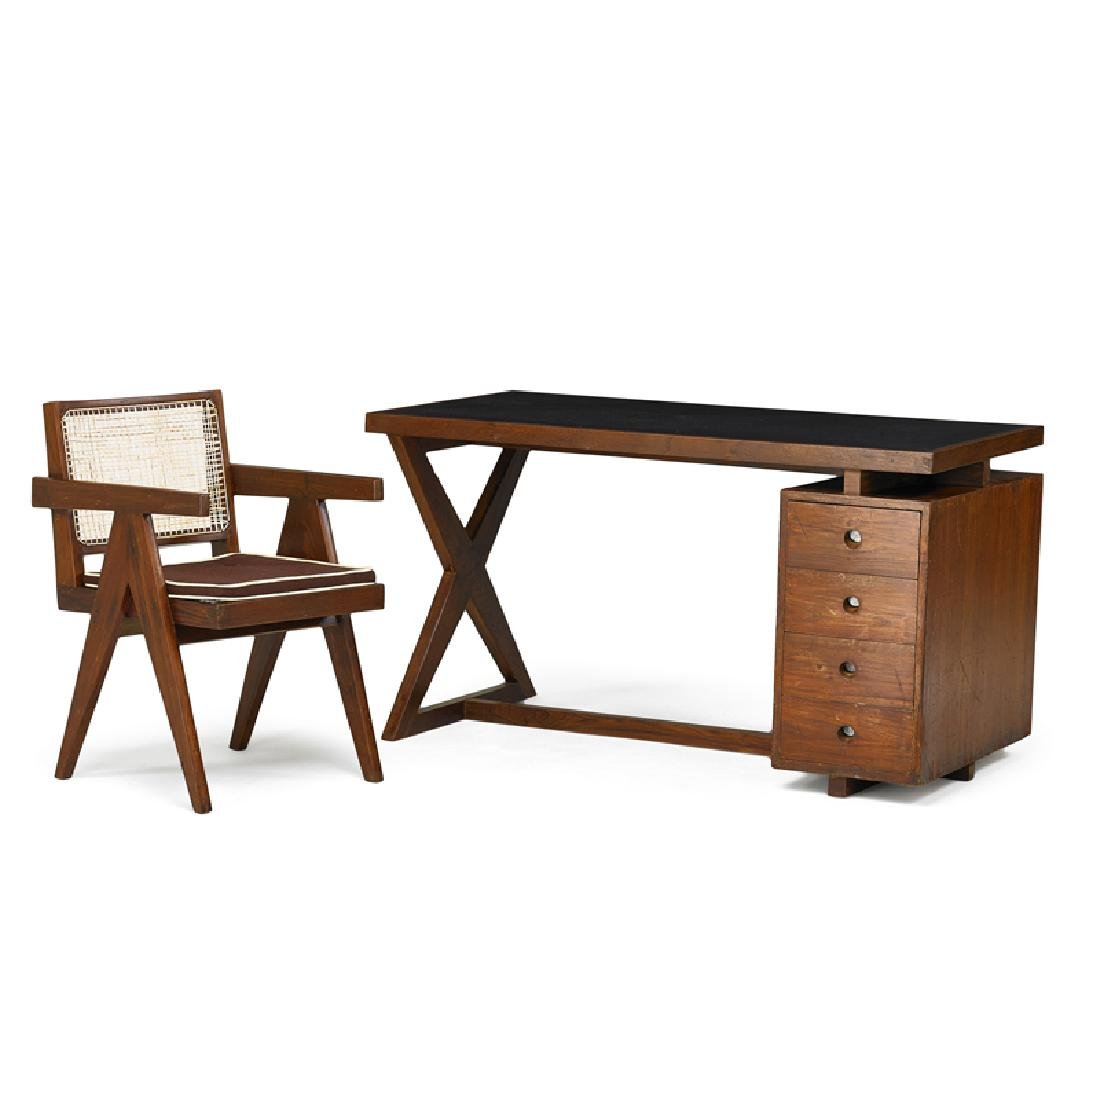 PIERRE JEANNERET Desk and armchair